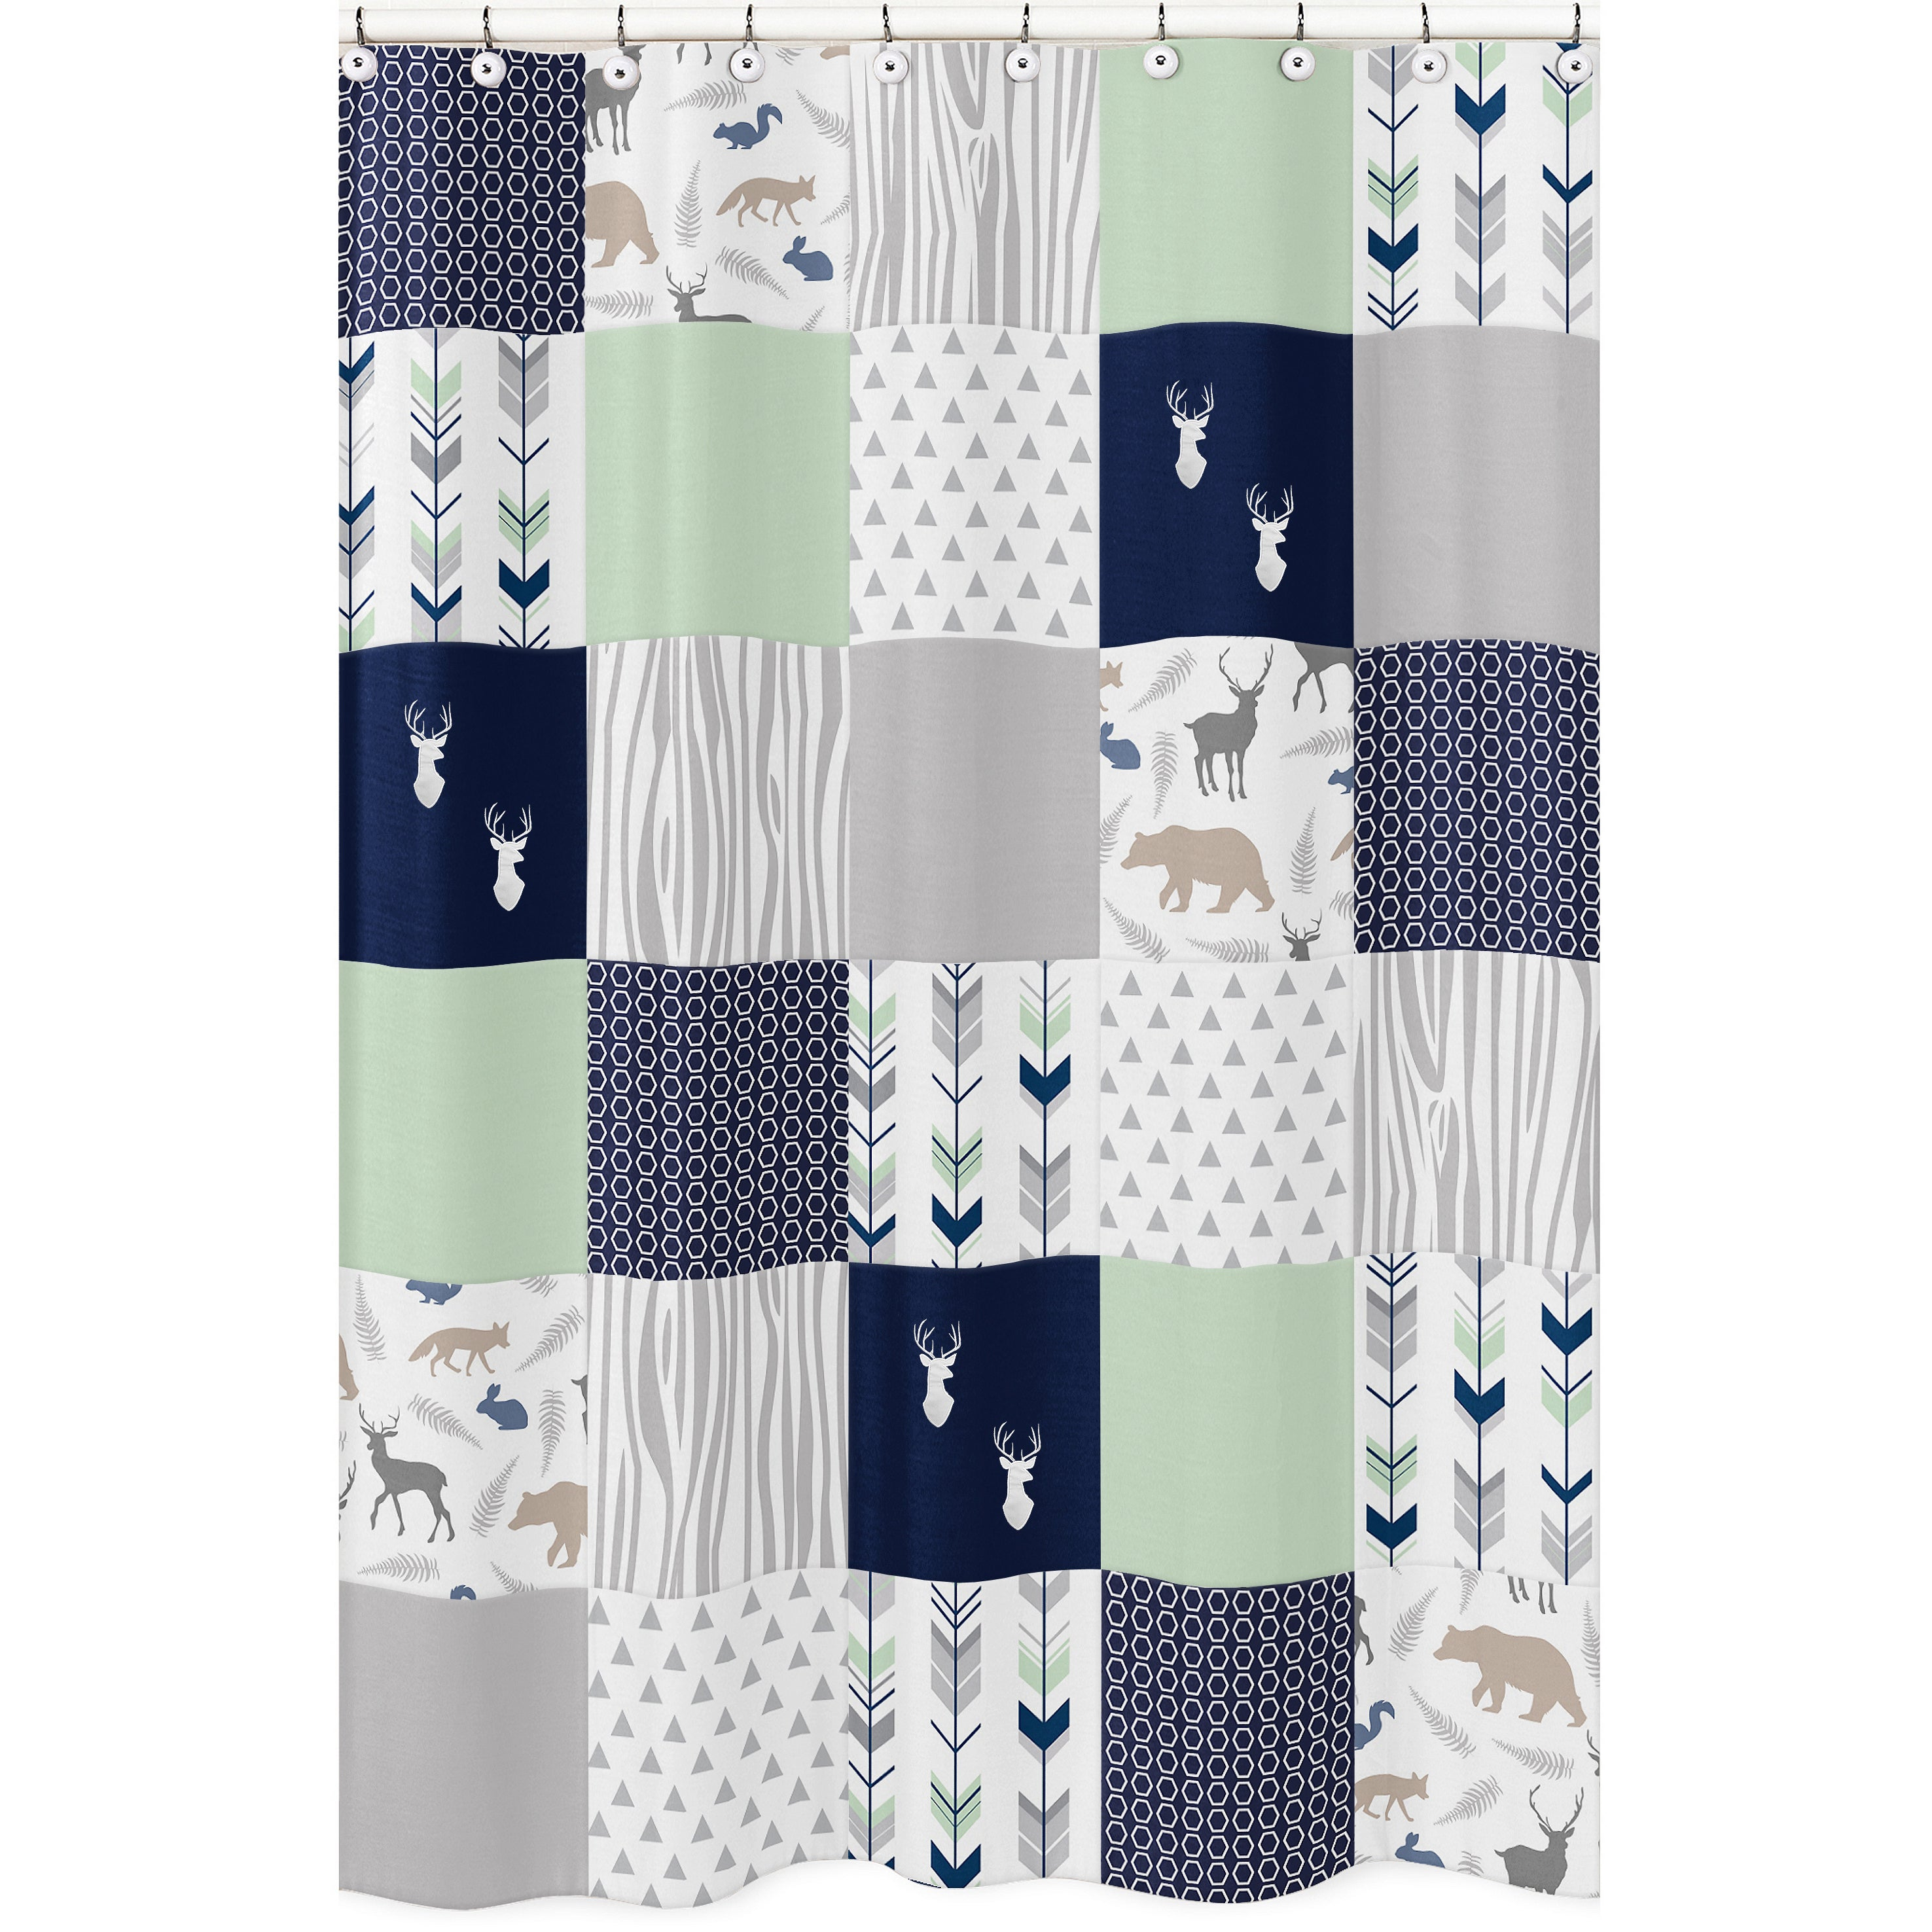 Shop Sweet Jojo Designs Shower Curtain For The Navy And Mint Woodsy Collection